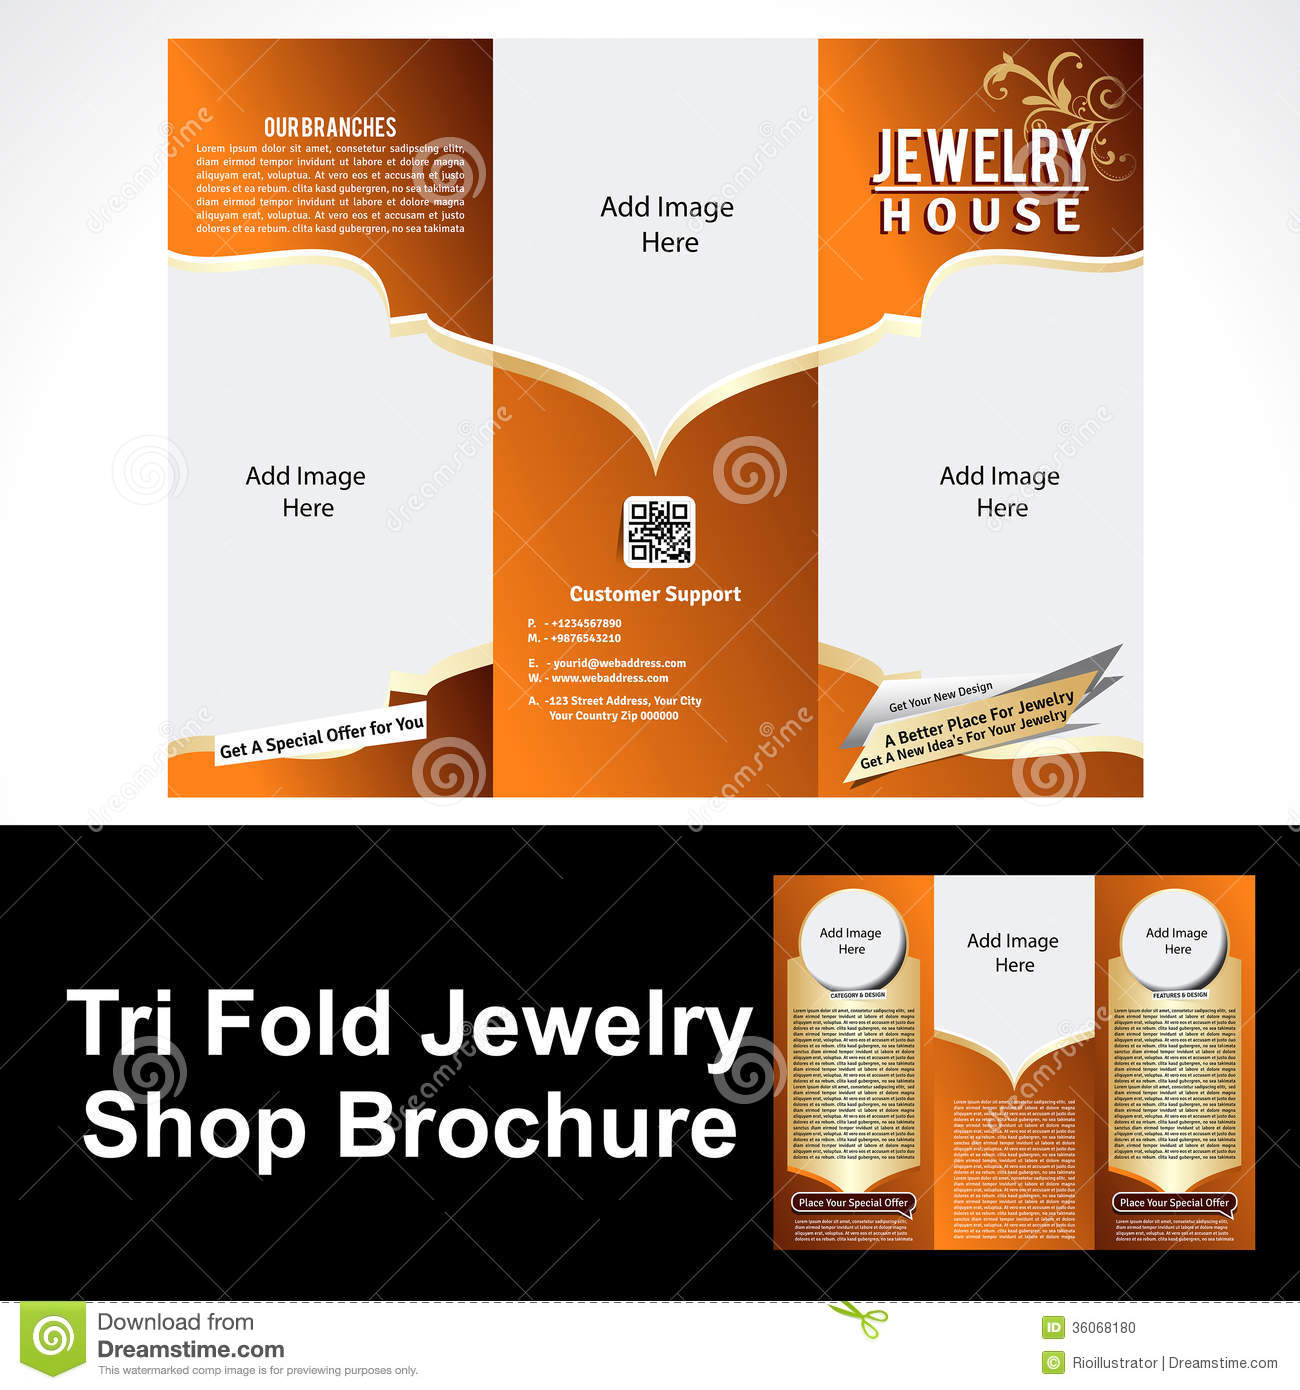 Tril Fold Jewelry Shop Brochure Stock Photo Image 36068180